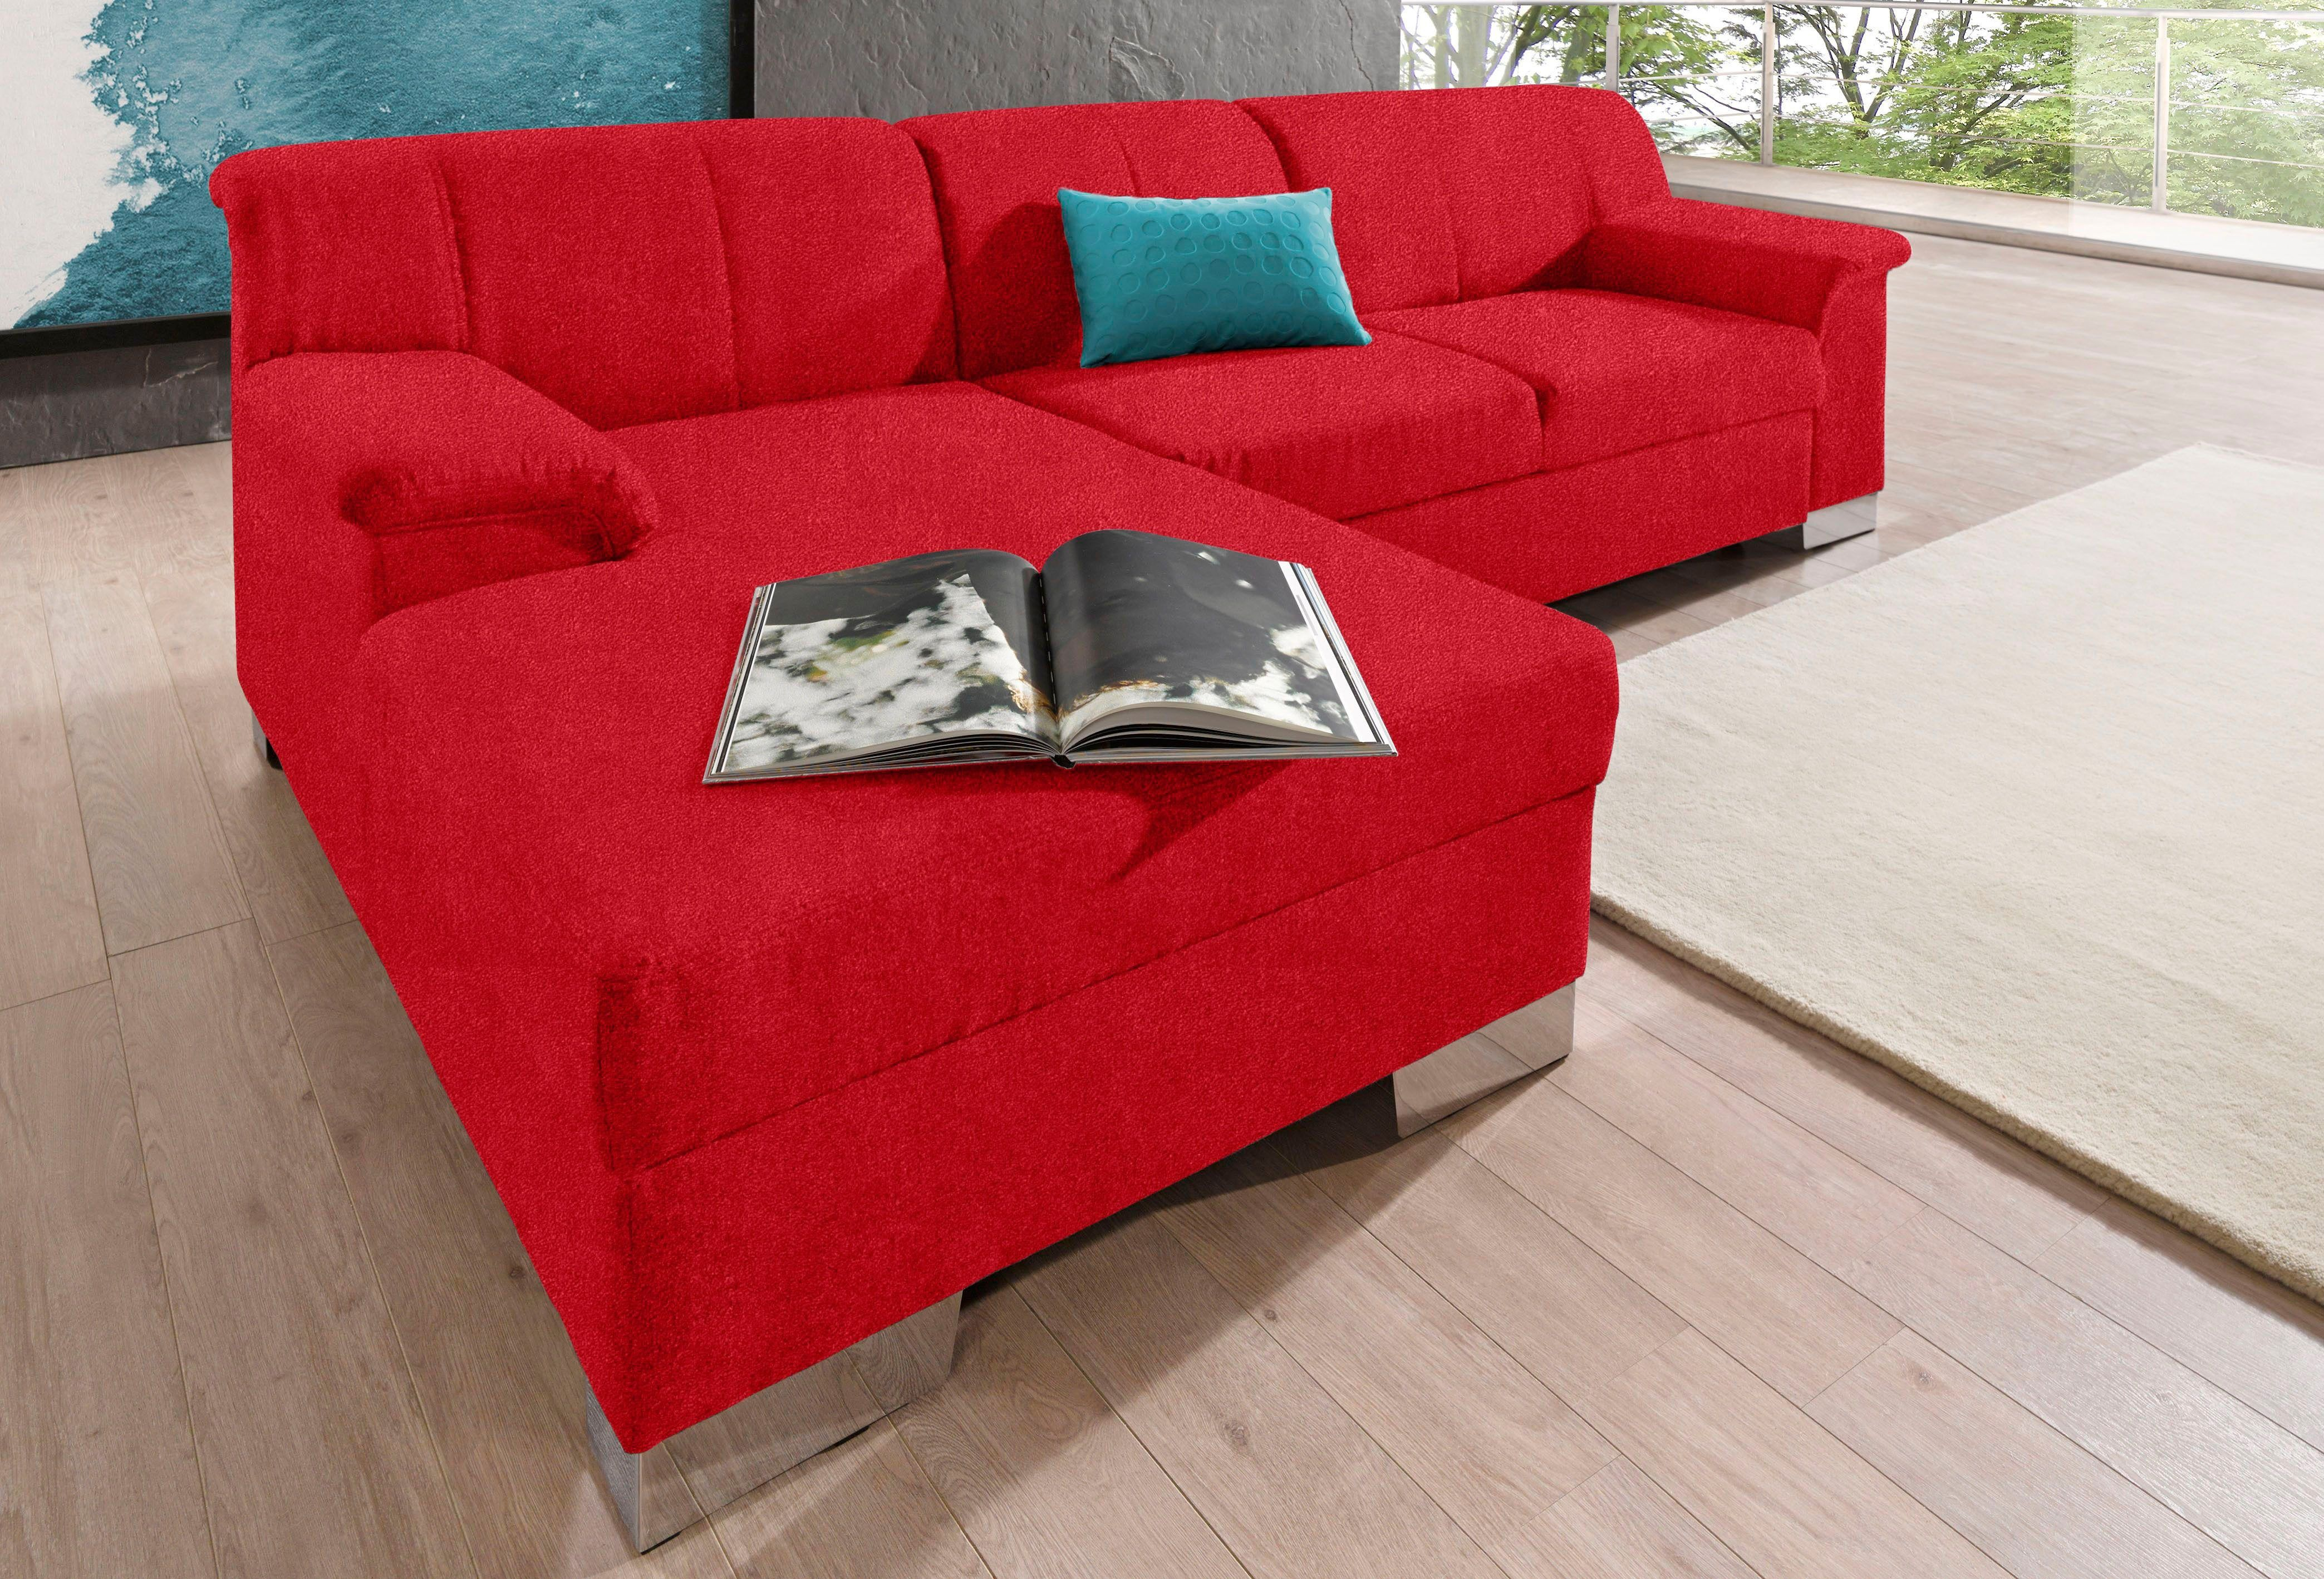 couch sofa armrest wrap tray table with side storage slot oversized sectional sofas canada pin by ladendirekt on and couches pinterest